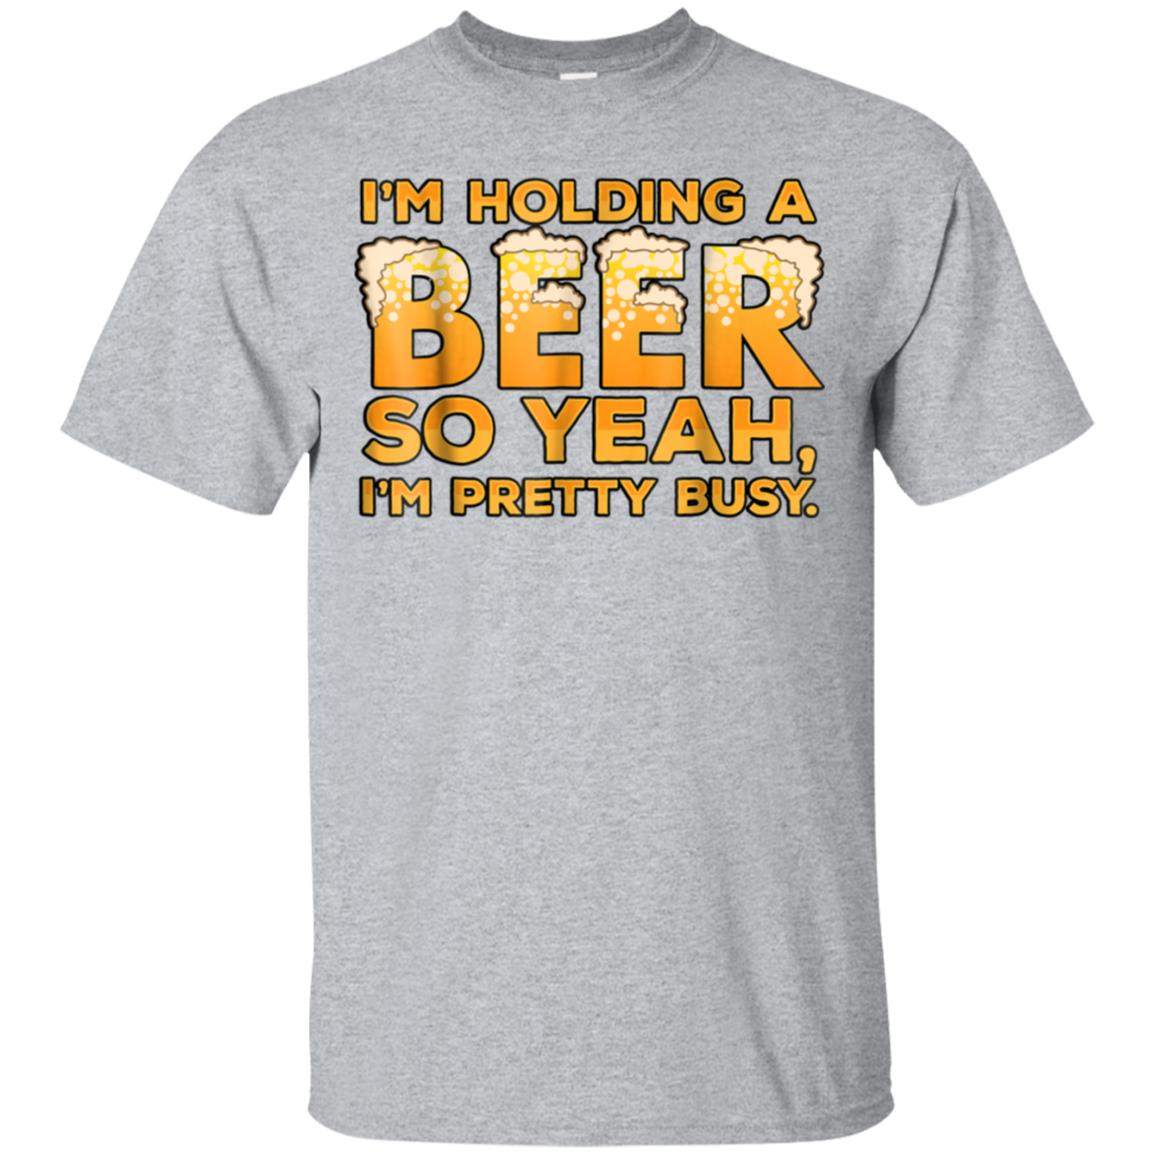 I'm Holding a Beer So Yeah I'm Pretty Busy TShirt 99promocode